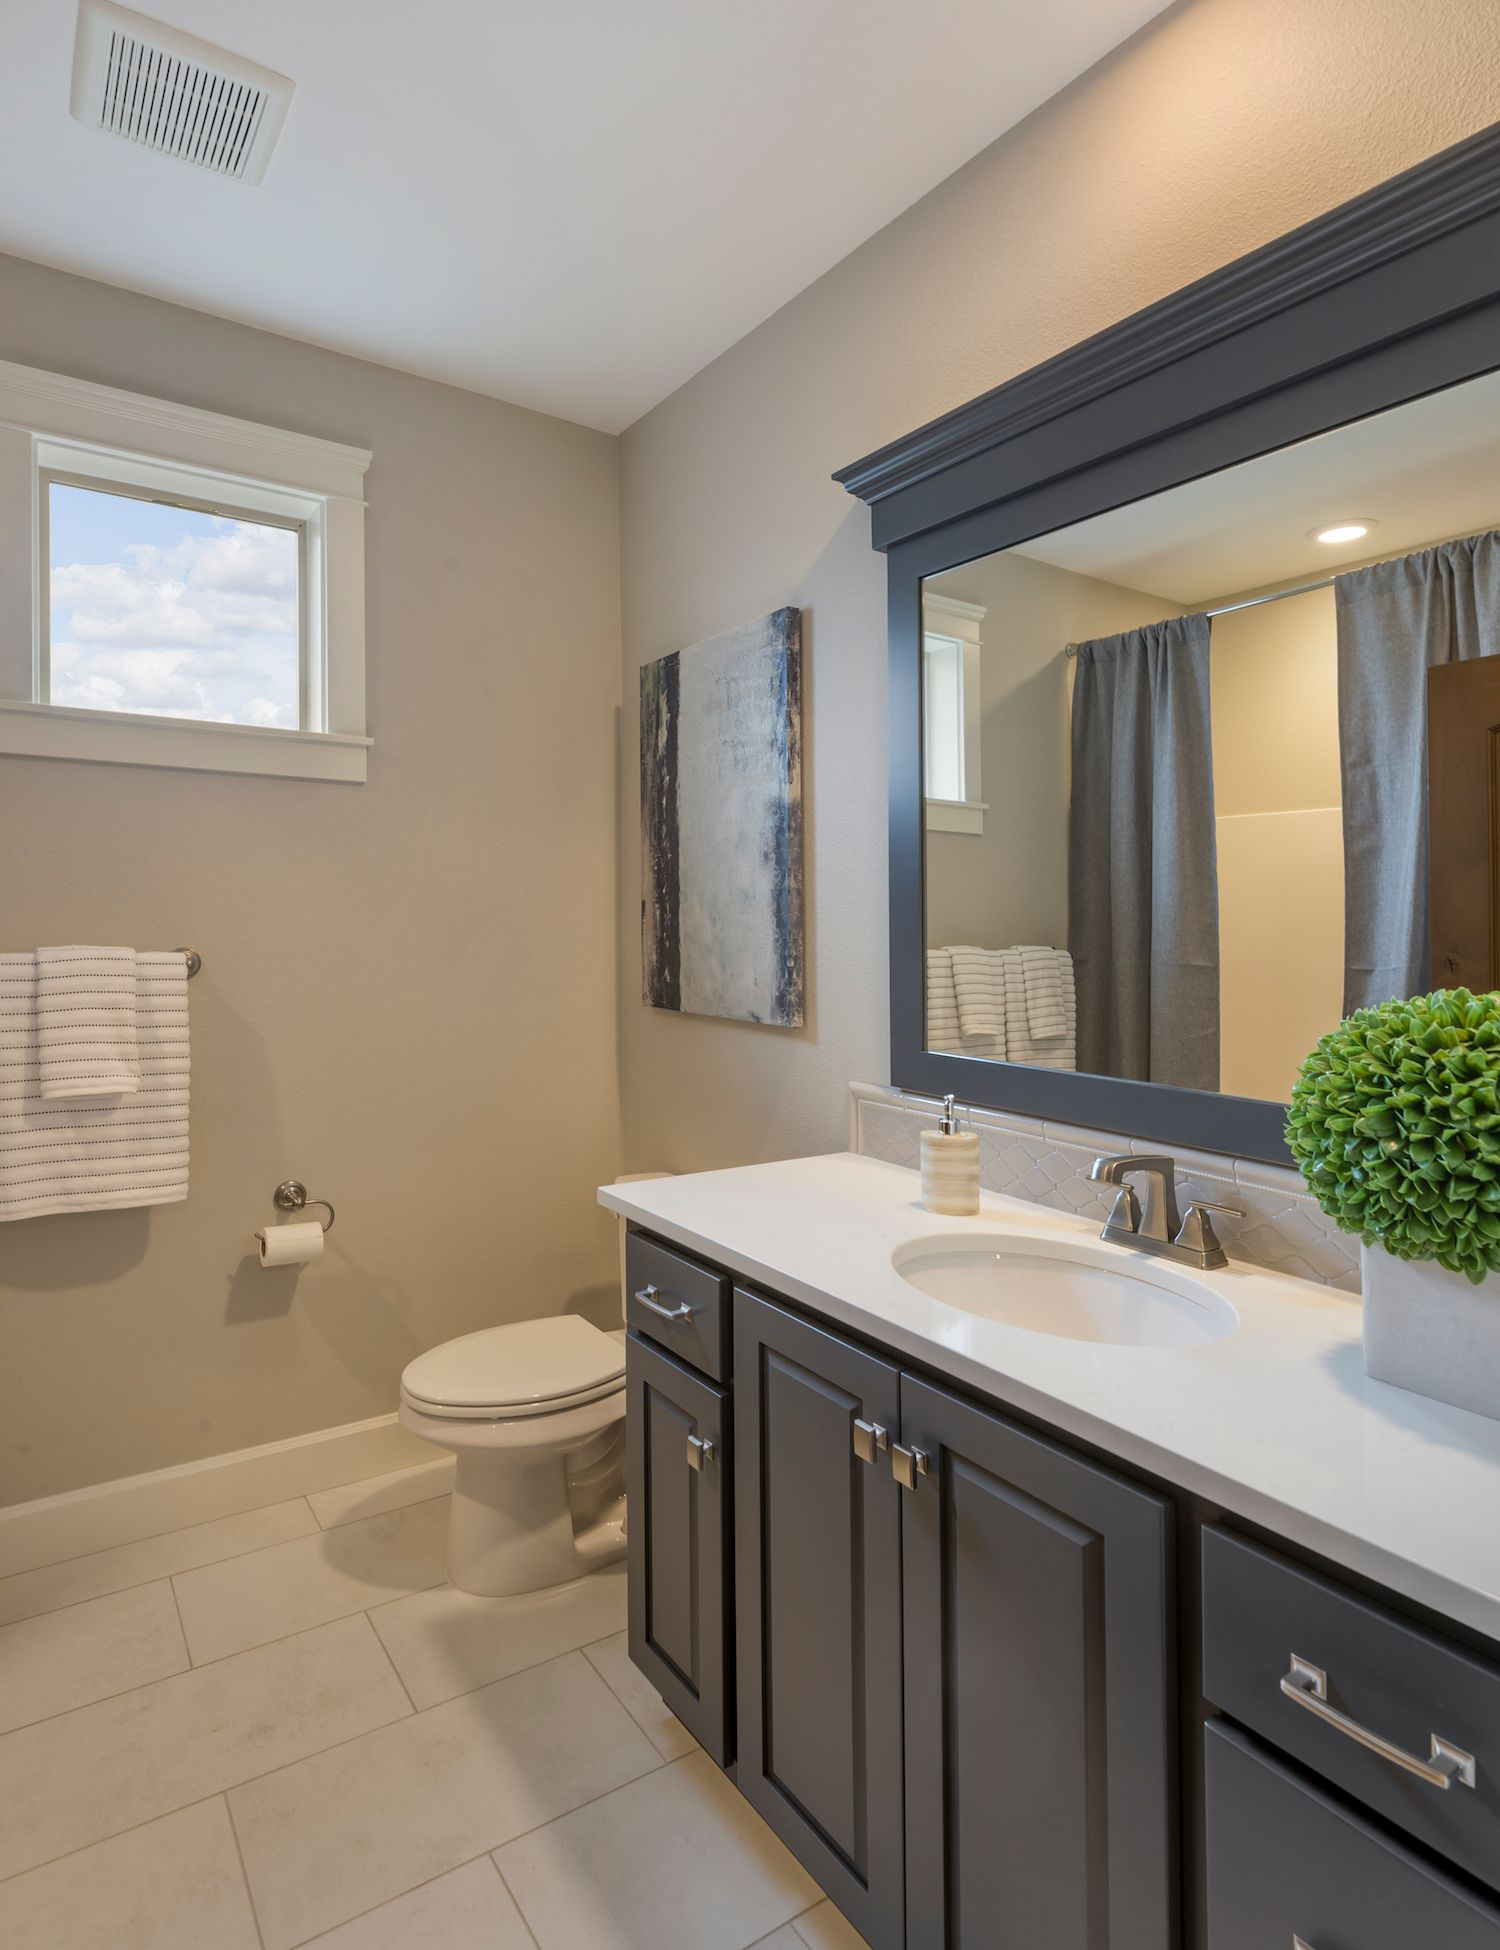 Bathroom featured in the Willamette By New Tradition Homes in Richland, WA